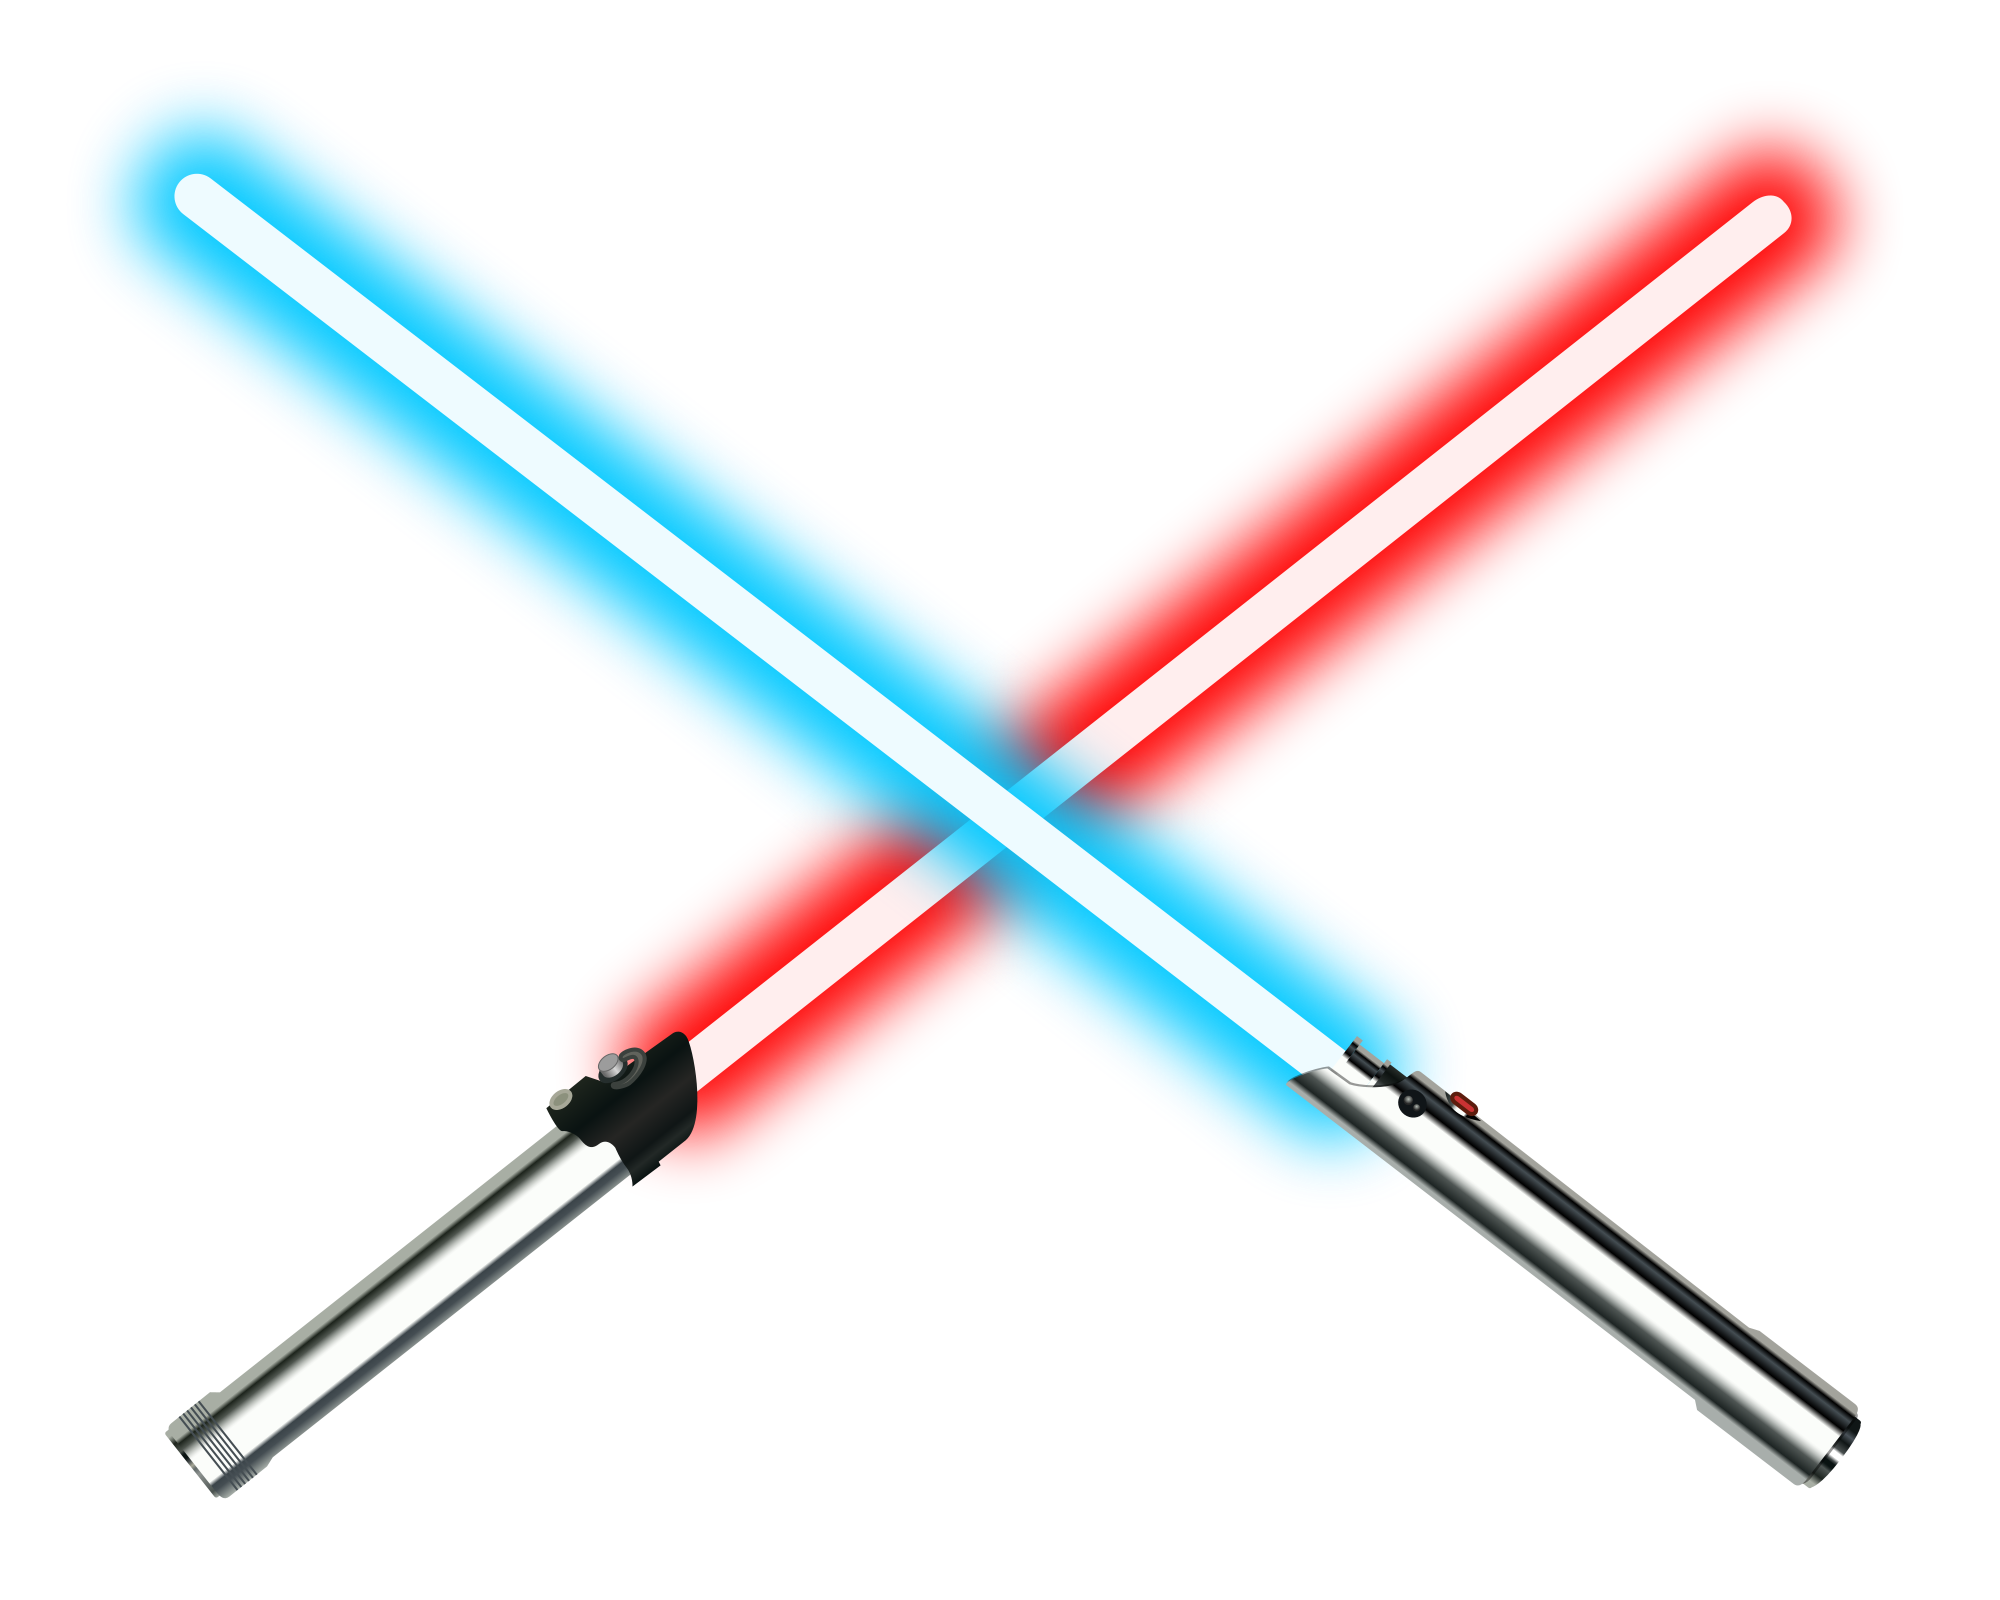 Lightsaber Clip Art & Lightsaber Clip Art Clip Art Images.